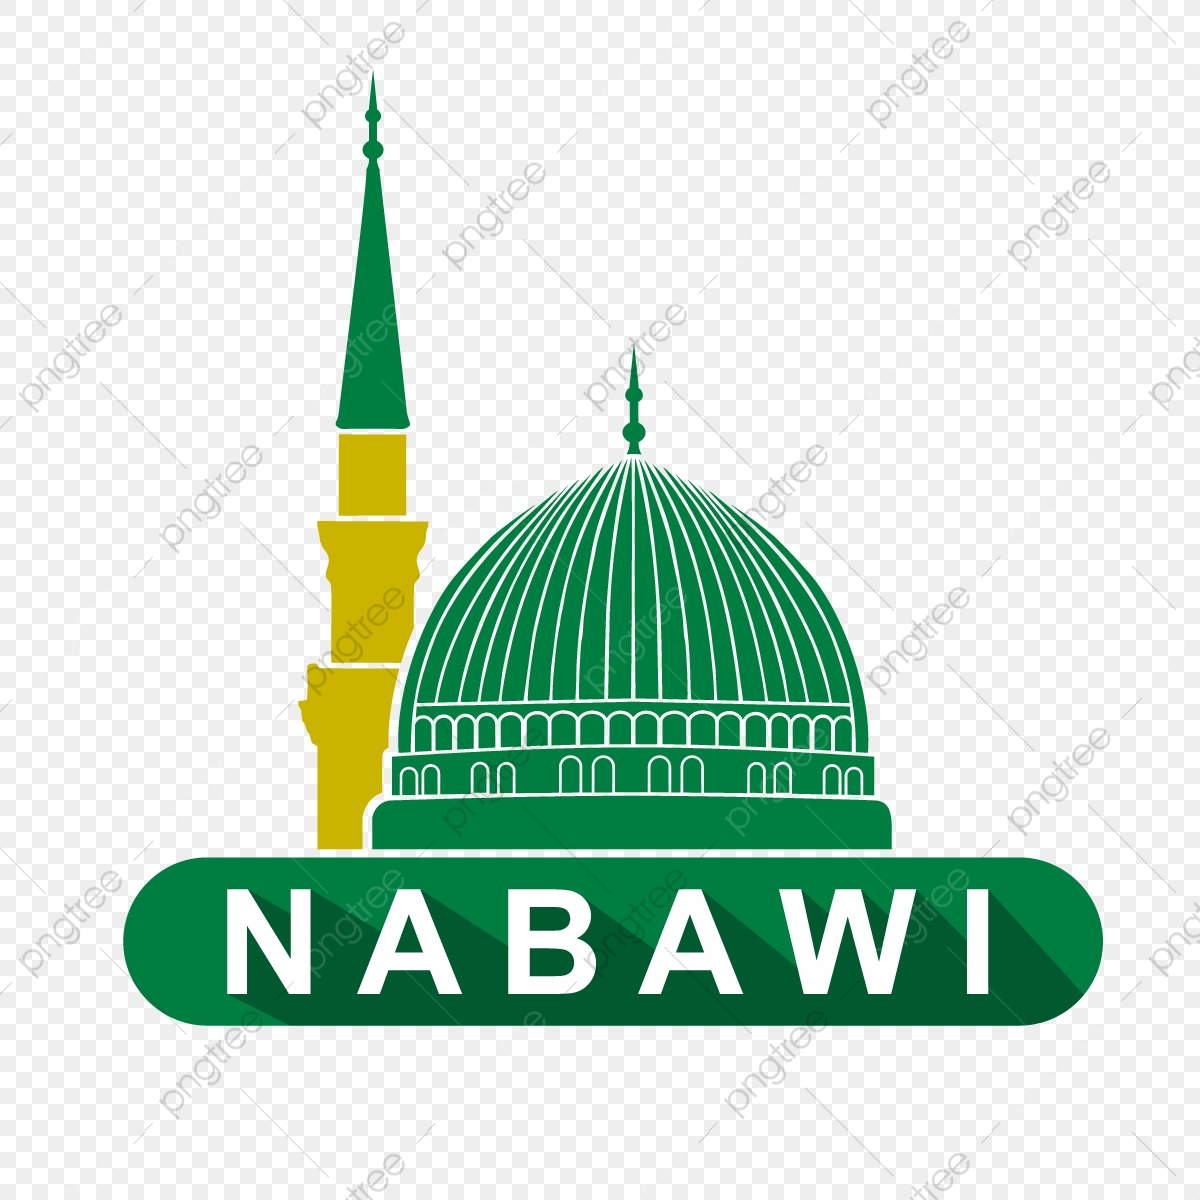 mosques png images vector and psd files free download on pngtree https pngtree com freepng green nabawi mosque illustration 5231169 html